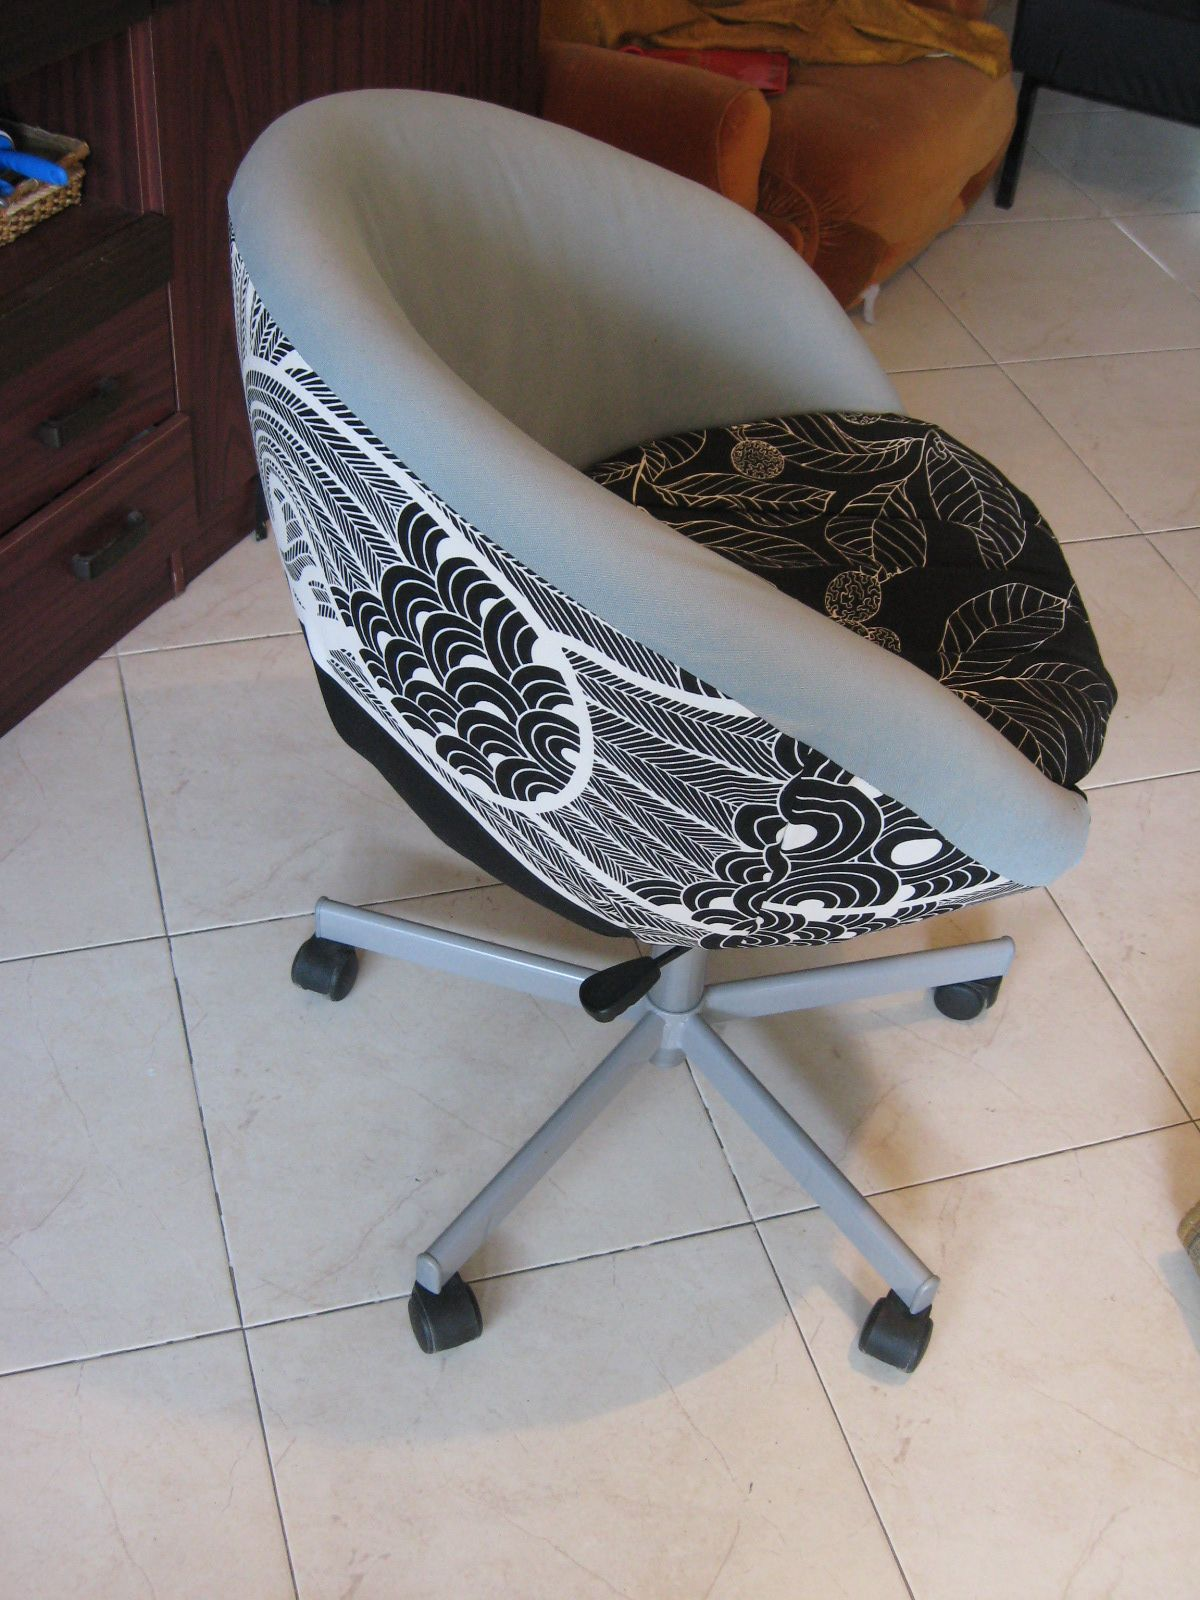 office chair makeover. IKEA Skruvsta Office Chair Makeover Wow .. Its Amazing What You Can Find While Searching Out Images For Cosmetic Dentistry And More H